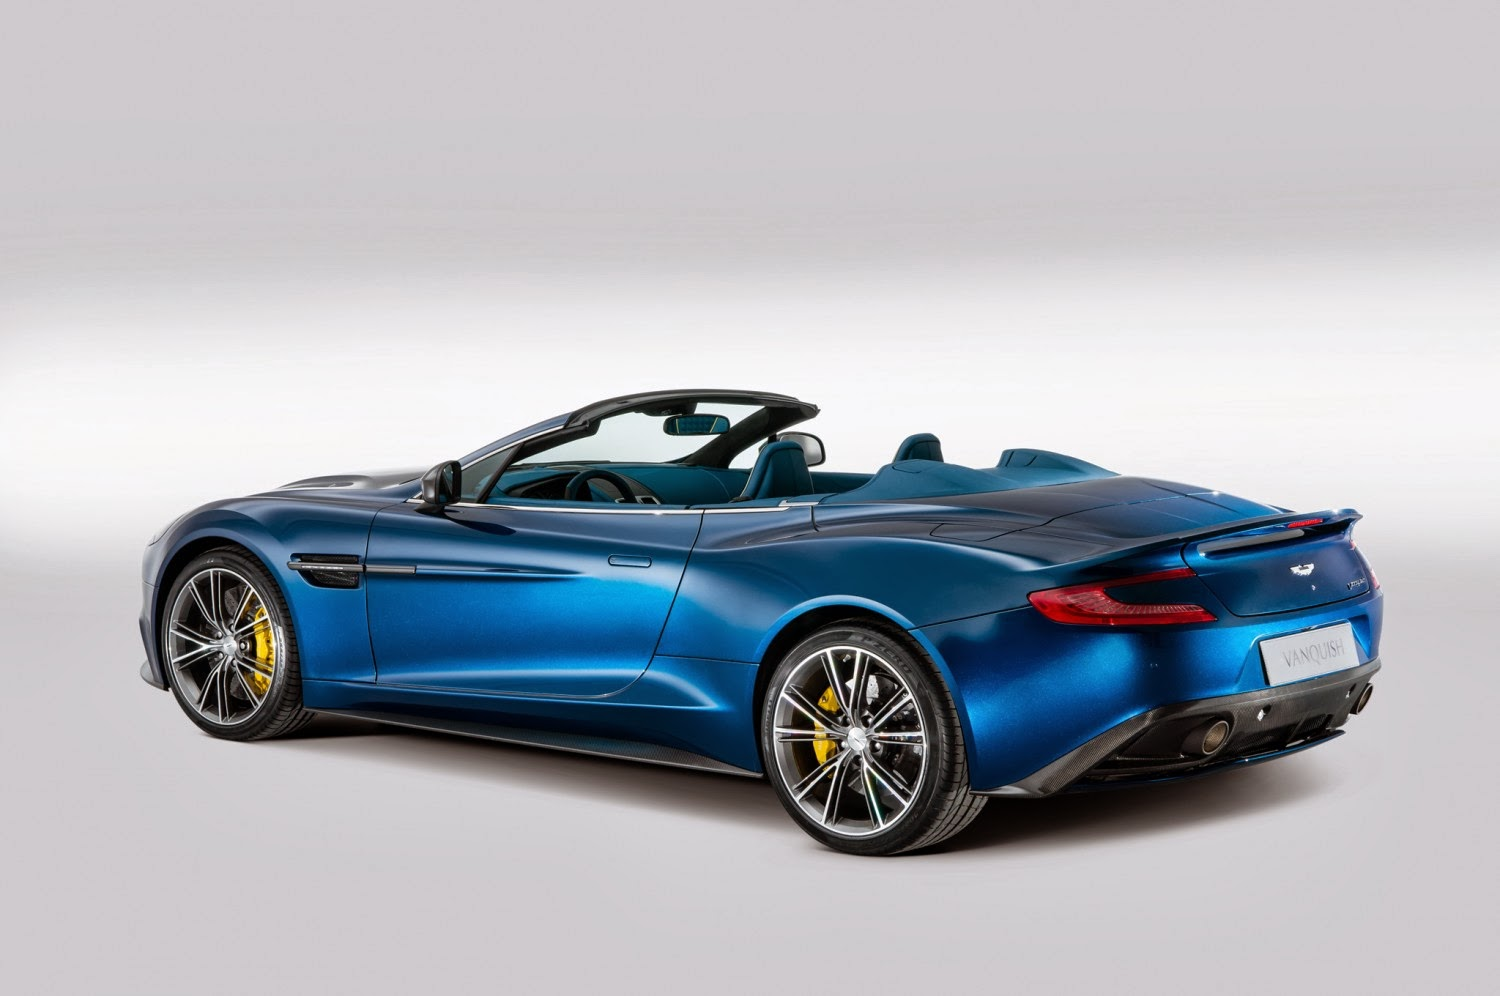 2014 aston martin vanquish volante review and price auto review 2014. Black Bedroom Furniture Sets. Home Design Ideas